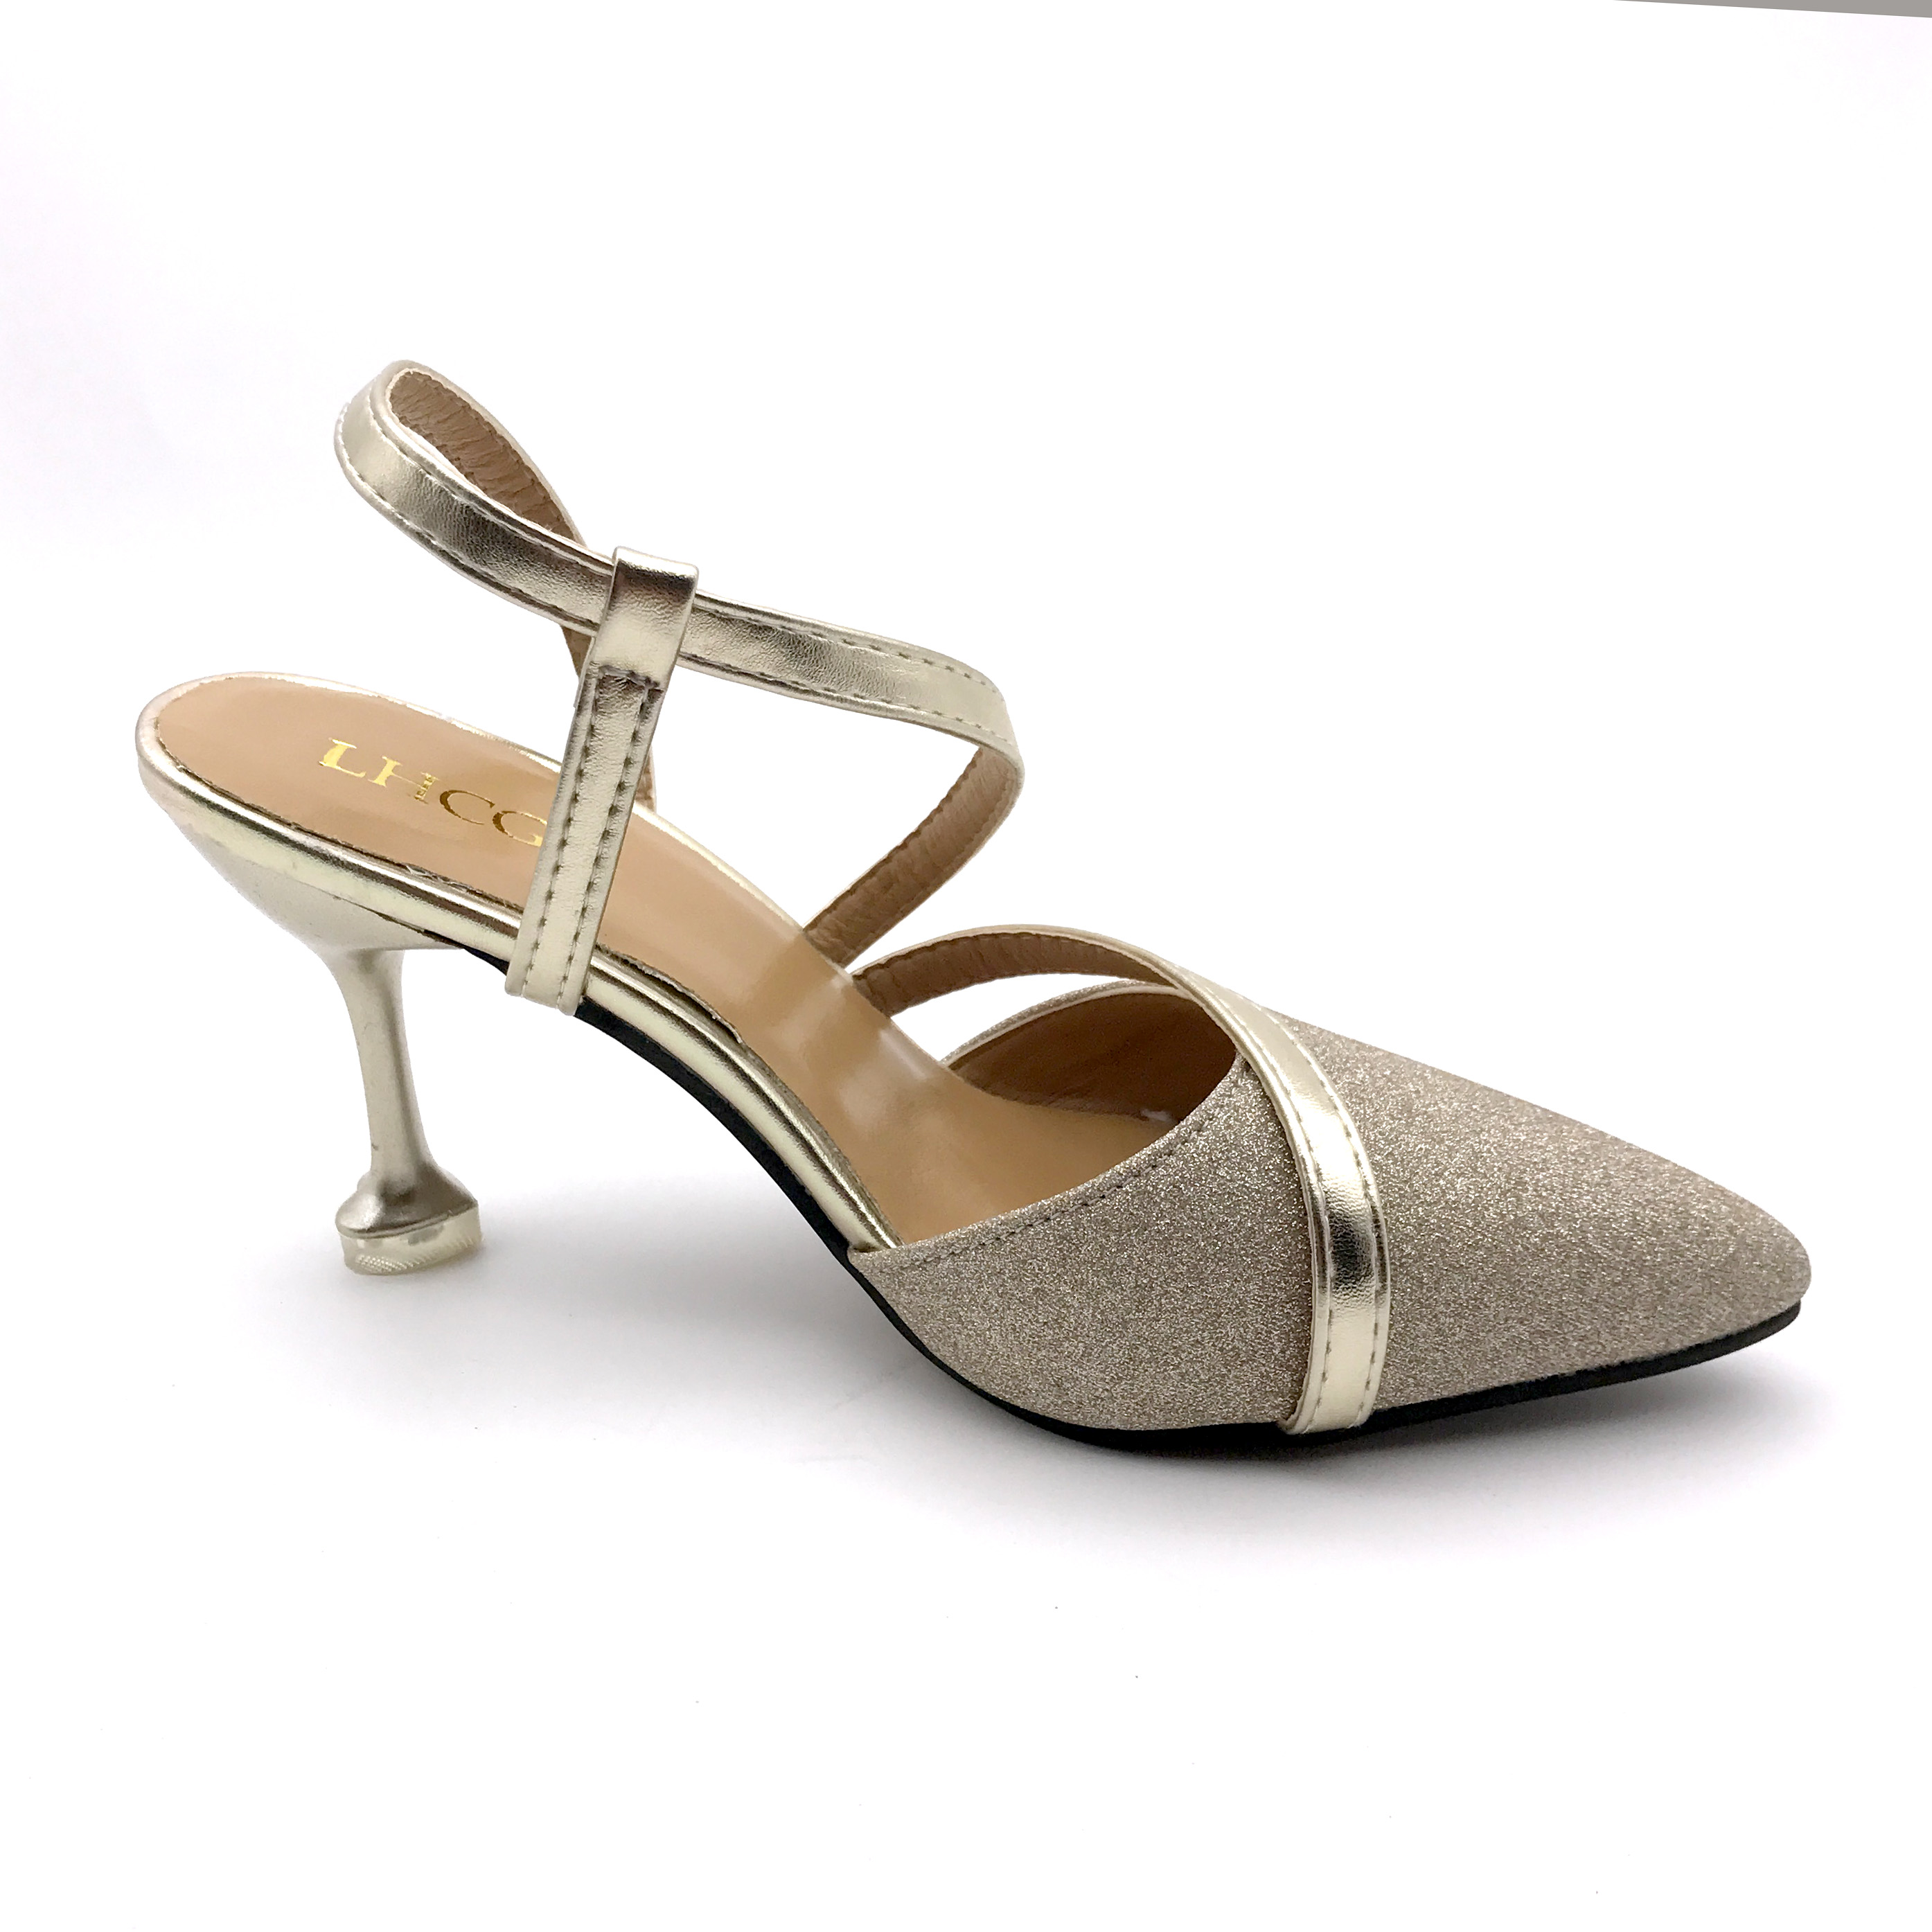 Women Wedding Shoes High Heels Pumps Pointed Toe Slingbacks Dress shoes Woman Summer Shoes Silver sandals Zapatos Mujer 3641 6